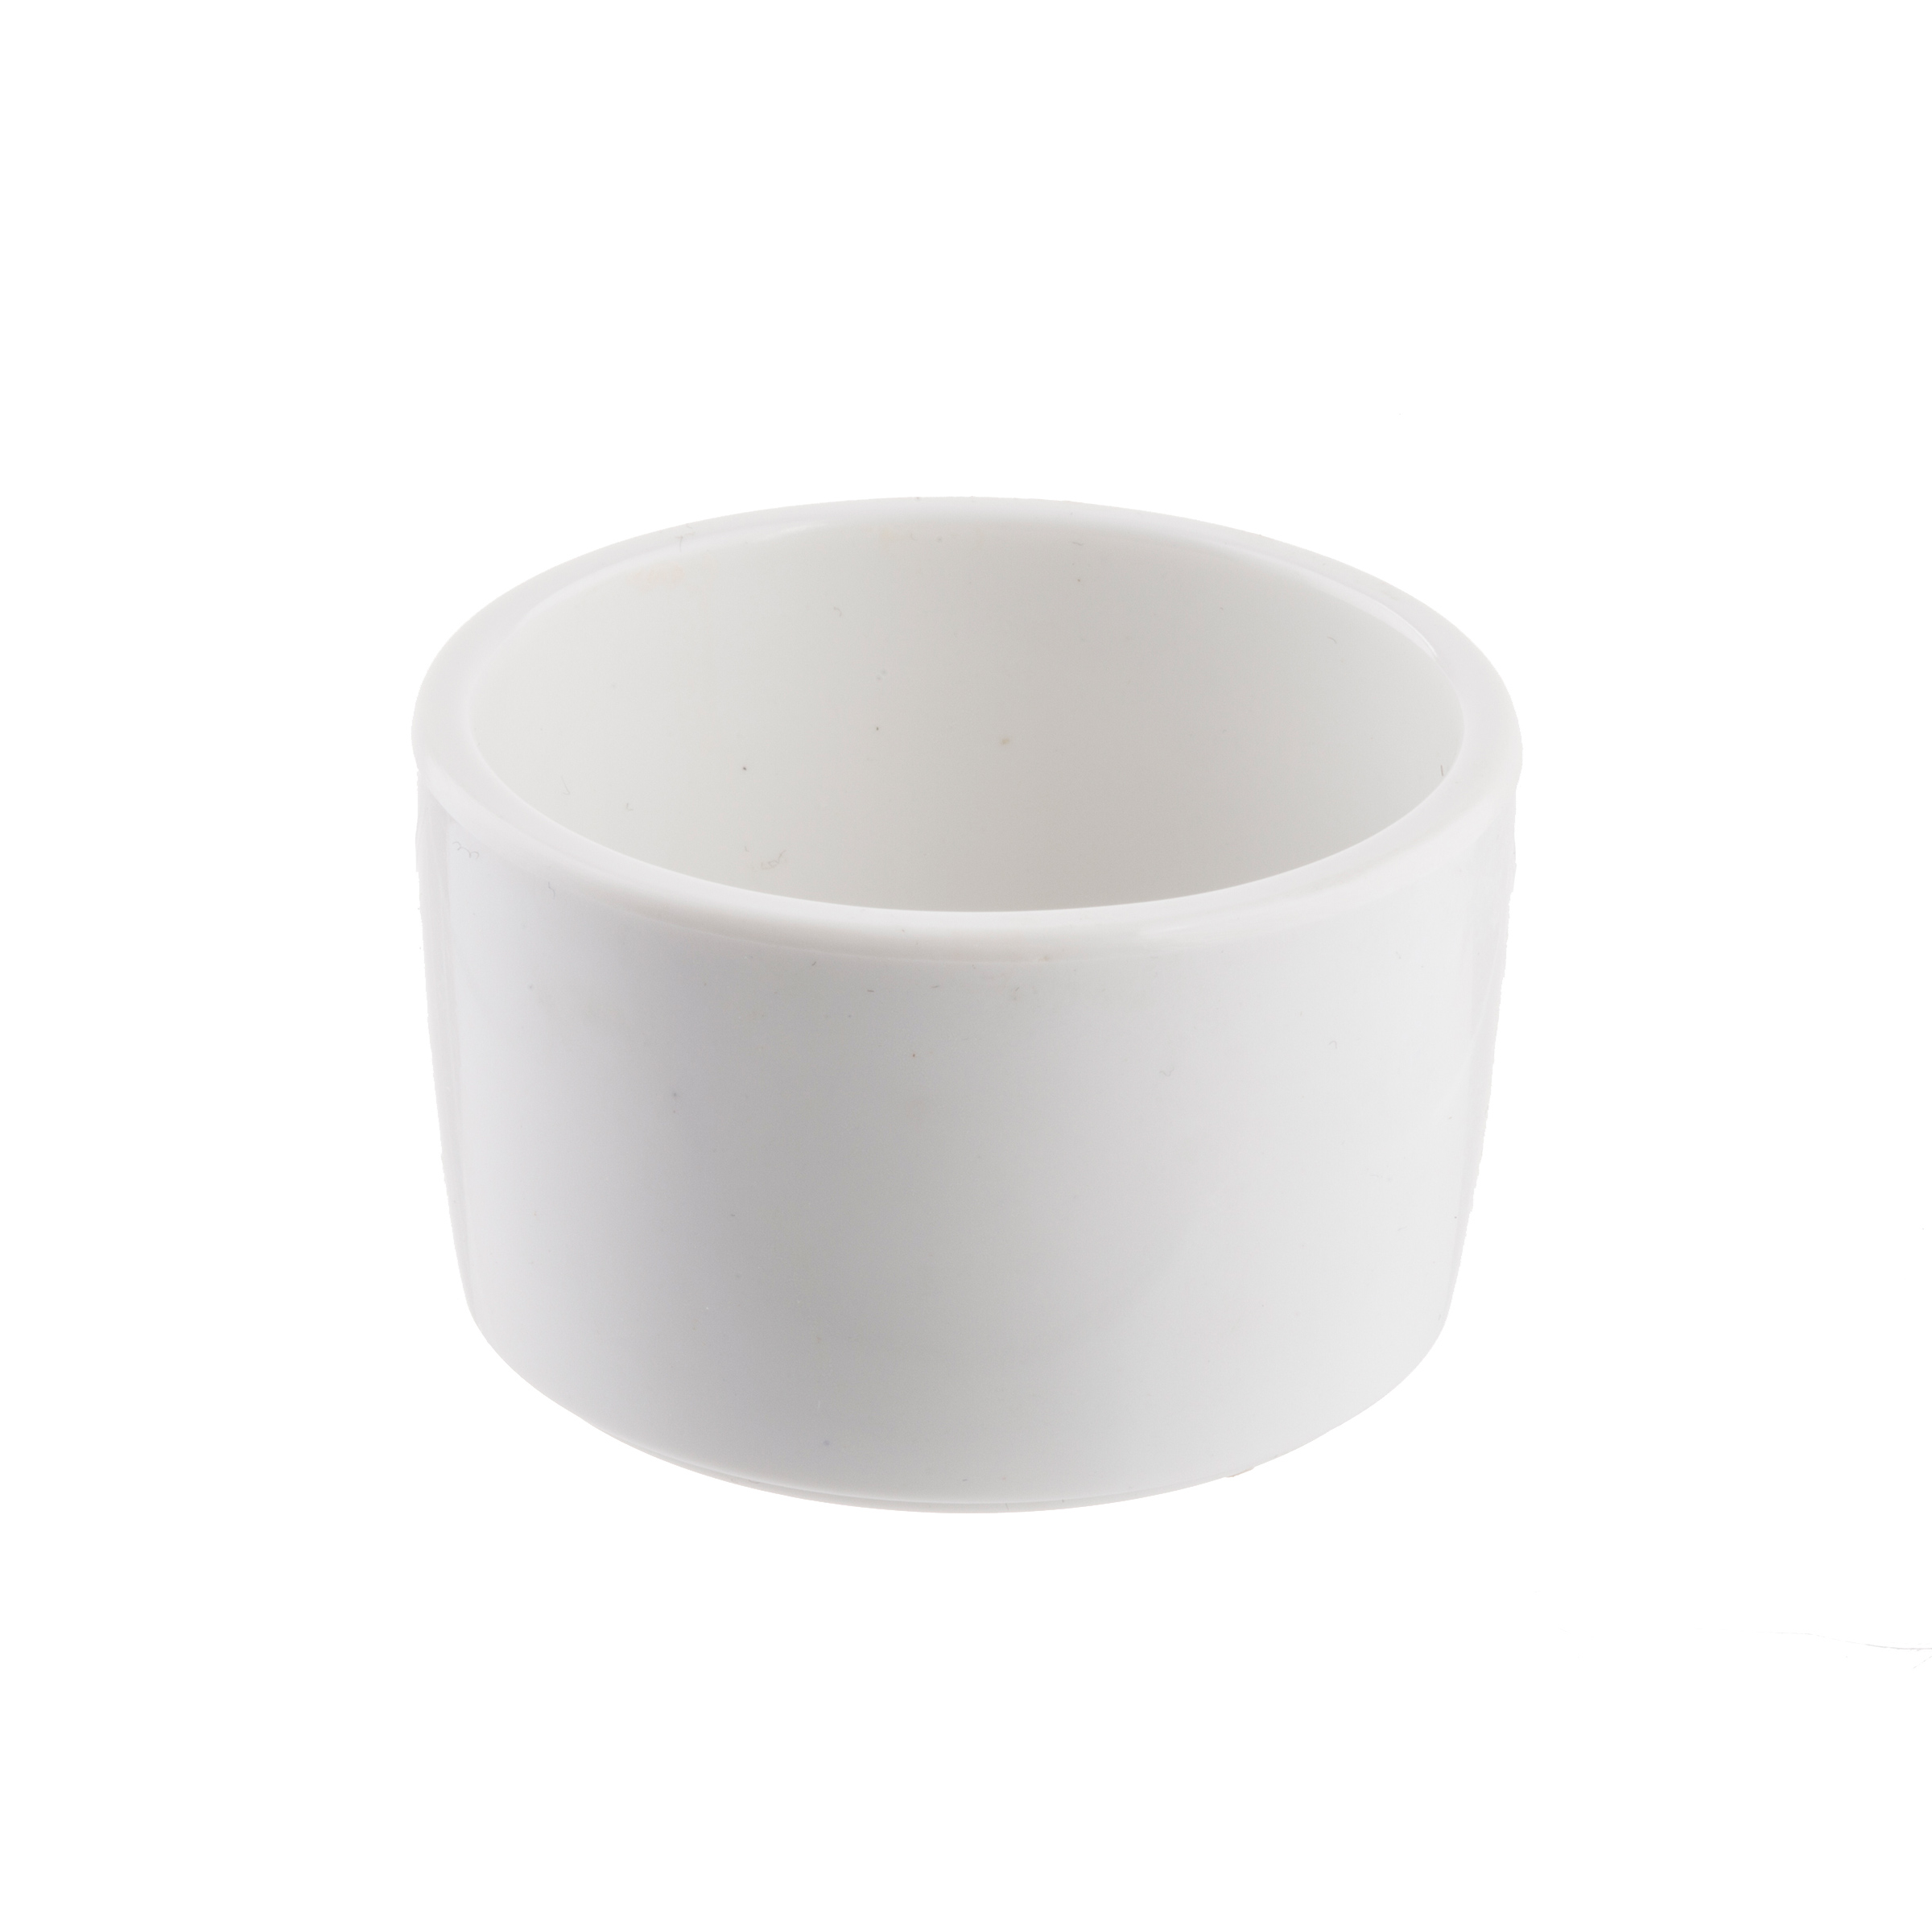 TableCraft Products RAM2RDB ramekin / sauce cup, plastic